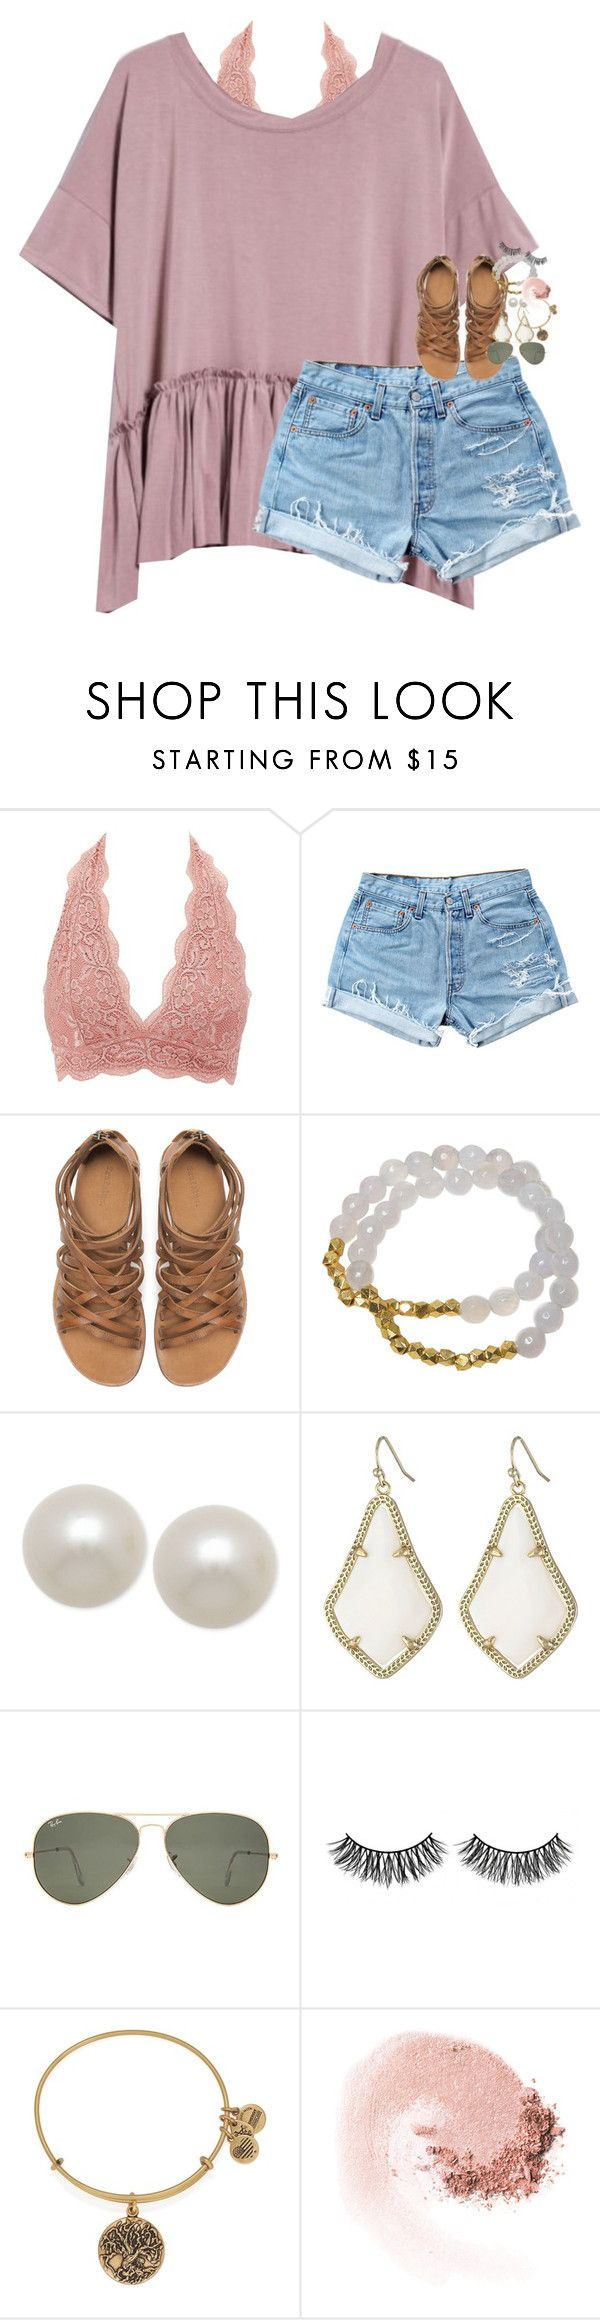 """""""i restarted pll"""" by classynsouthern ❤ liked on Polyvore featuring Charlotte Russe, Levi's, Zara, Electric Picks, Honora, Kendra Scott, Ray-Ban, Rimini, Alex and Ani and NARS Cosmetics"""